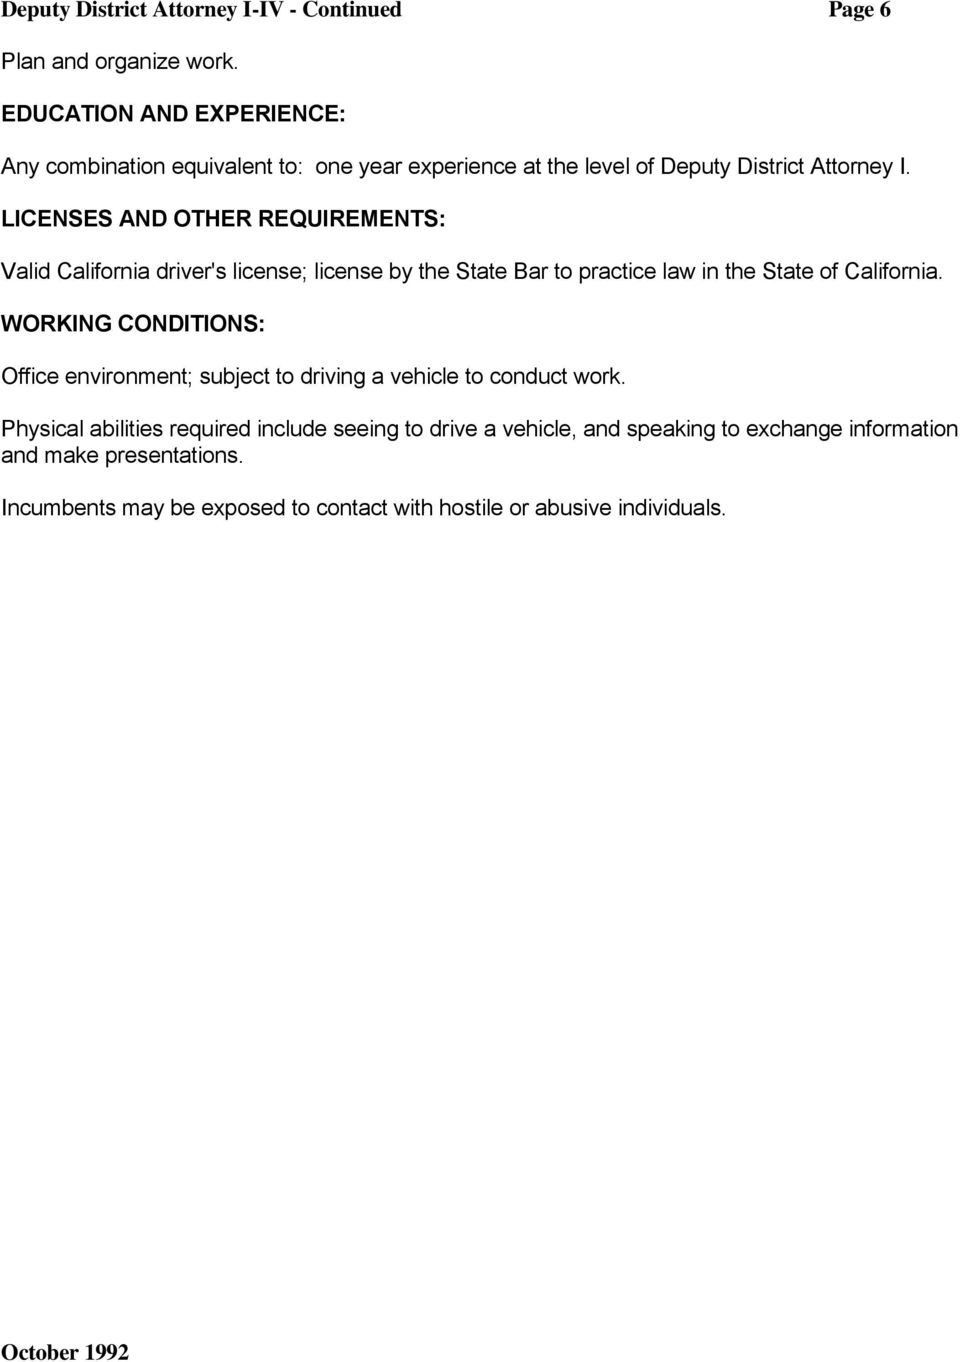 LICENSES AND OTHER REQUIREMENTS: Valid California driver's license; license by the State Bar to practice law in the State of California.